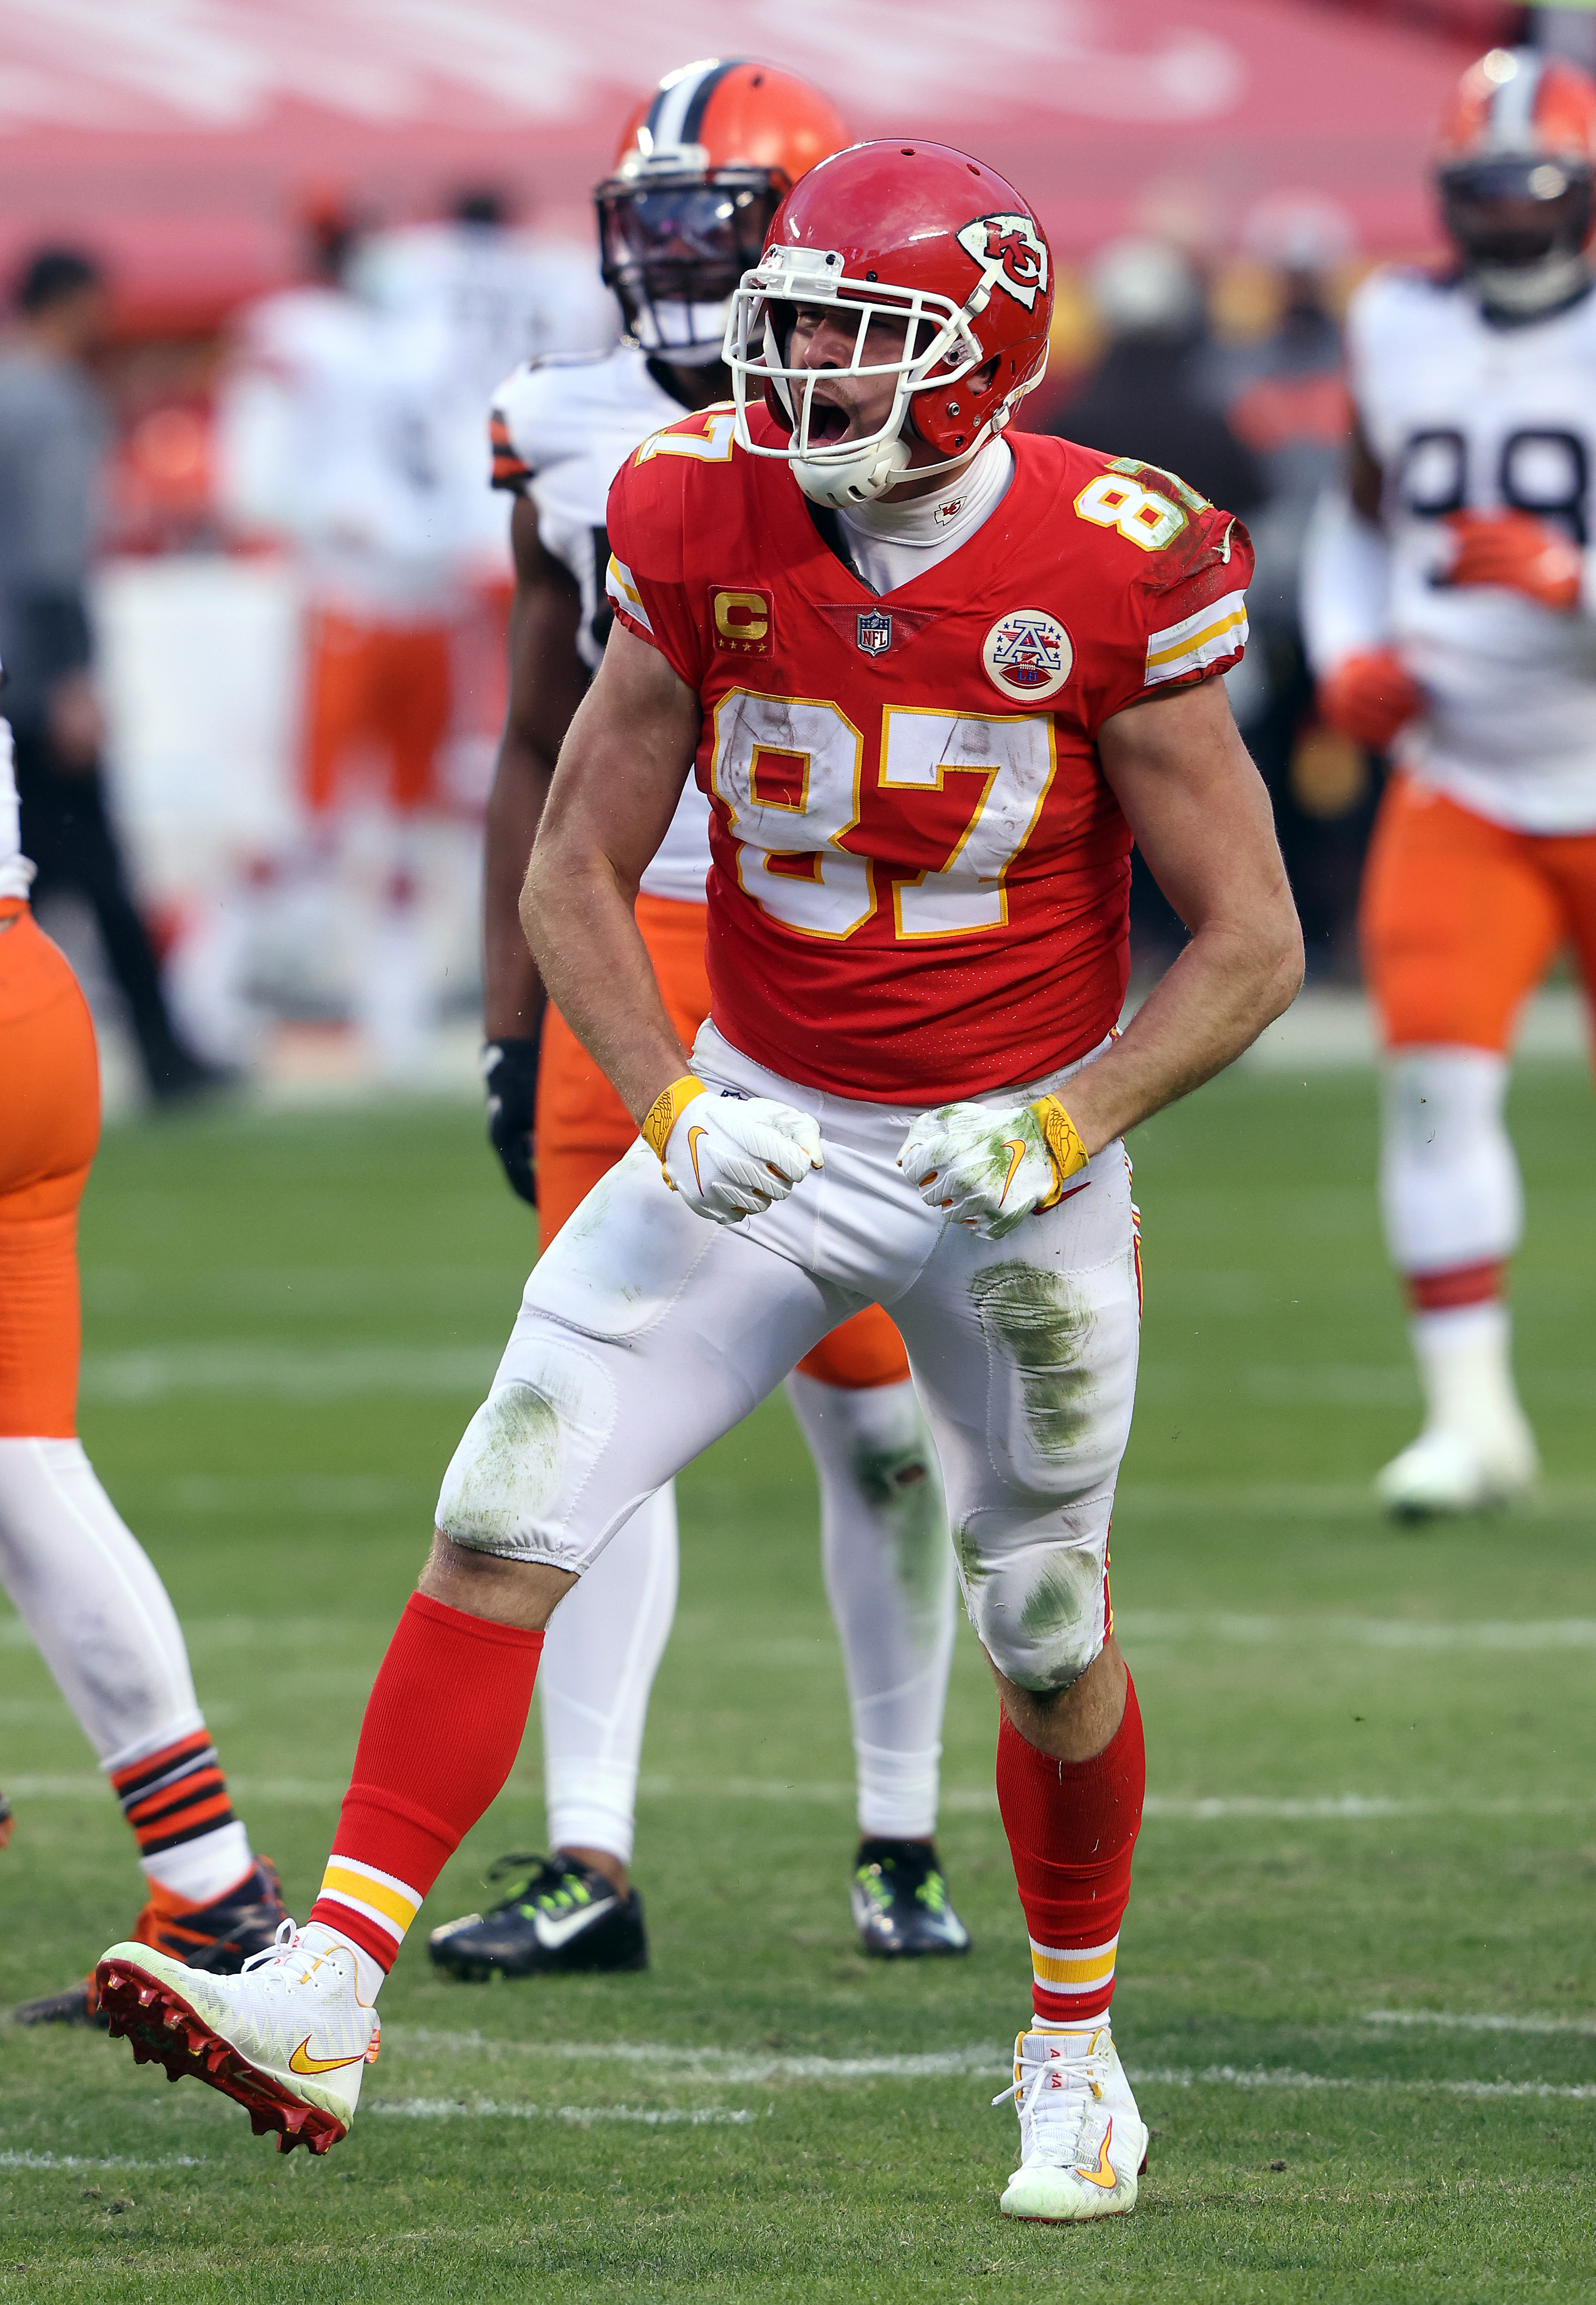 Travis Kelce #87 of the Kansas City Chiefs celebrates after making a catch for a first down over the Cleveland Browns during the fourth quarter of the AFC Divisional Playoff game at Arrowhead Stadium on January 17, 2021 in Kansas City, Missouri.